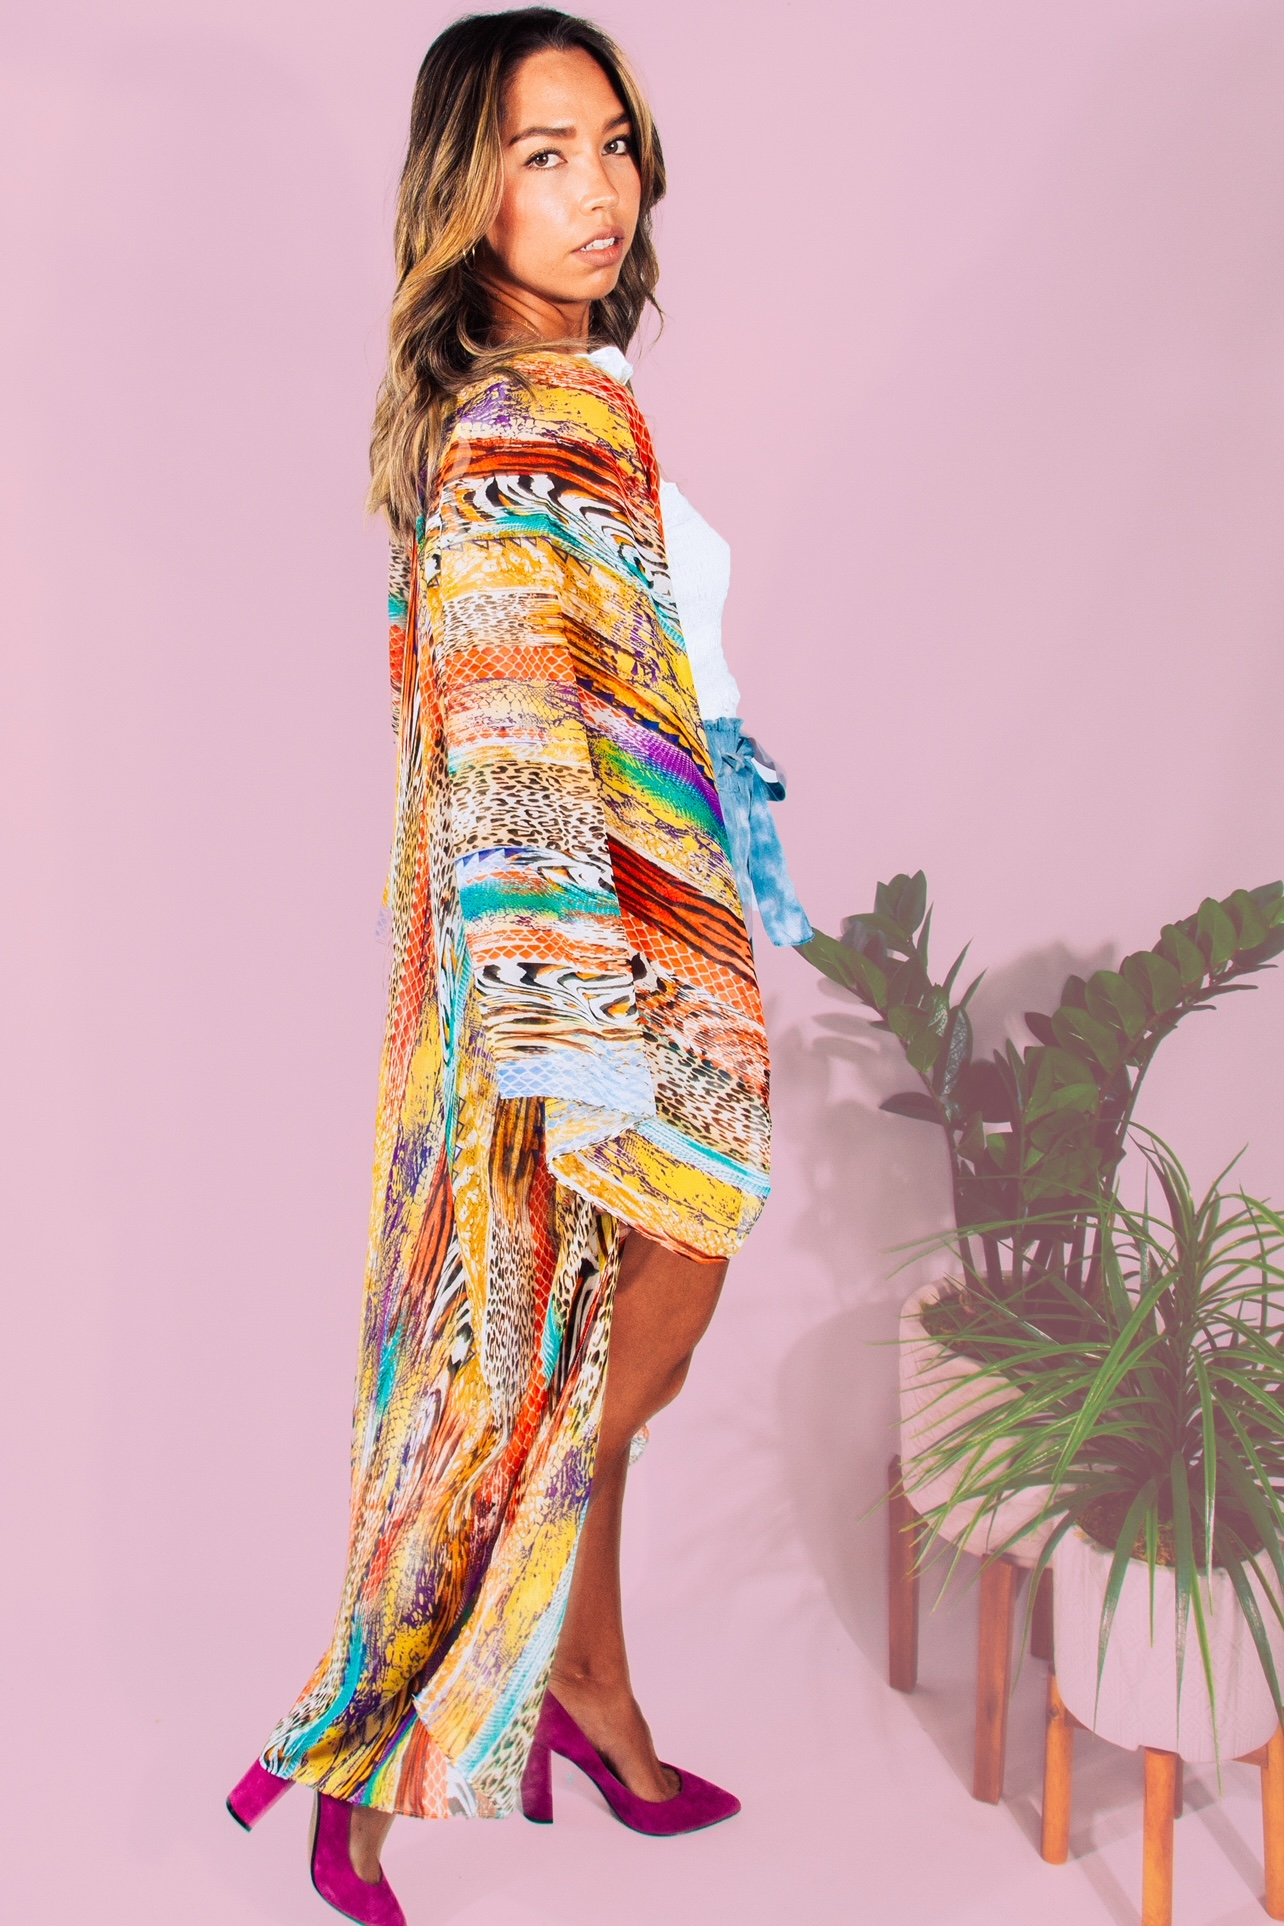 Long, oversized and flowy kimono, perfect for beach cover up or the perfect boho outfit. 100% polyester. Dallan is a size 4/6 wearing a small.  S 0-10 M 10-20 L 20-24